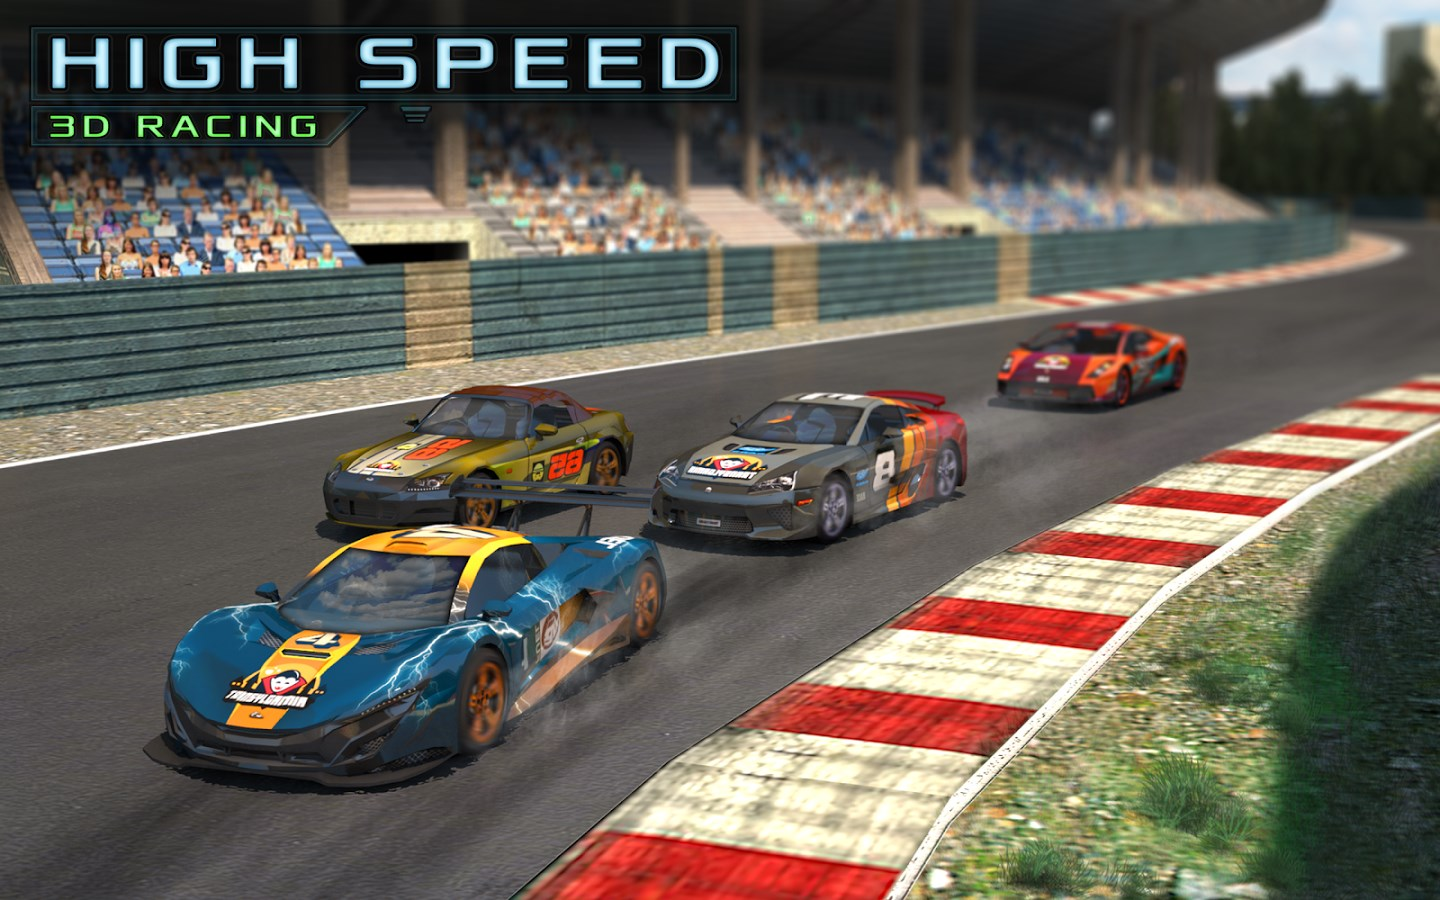 download 3d racing cars - photo #23